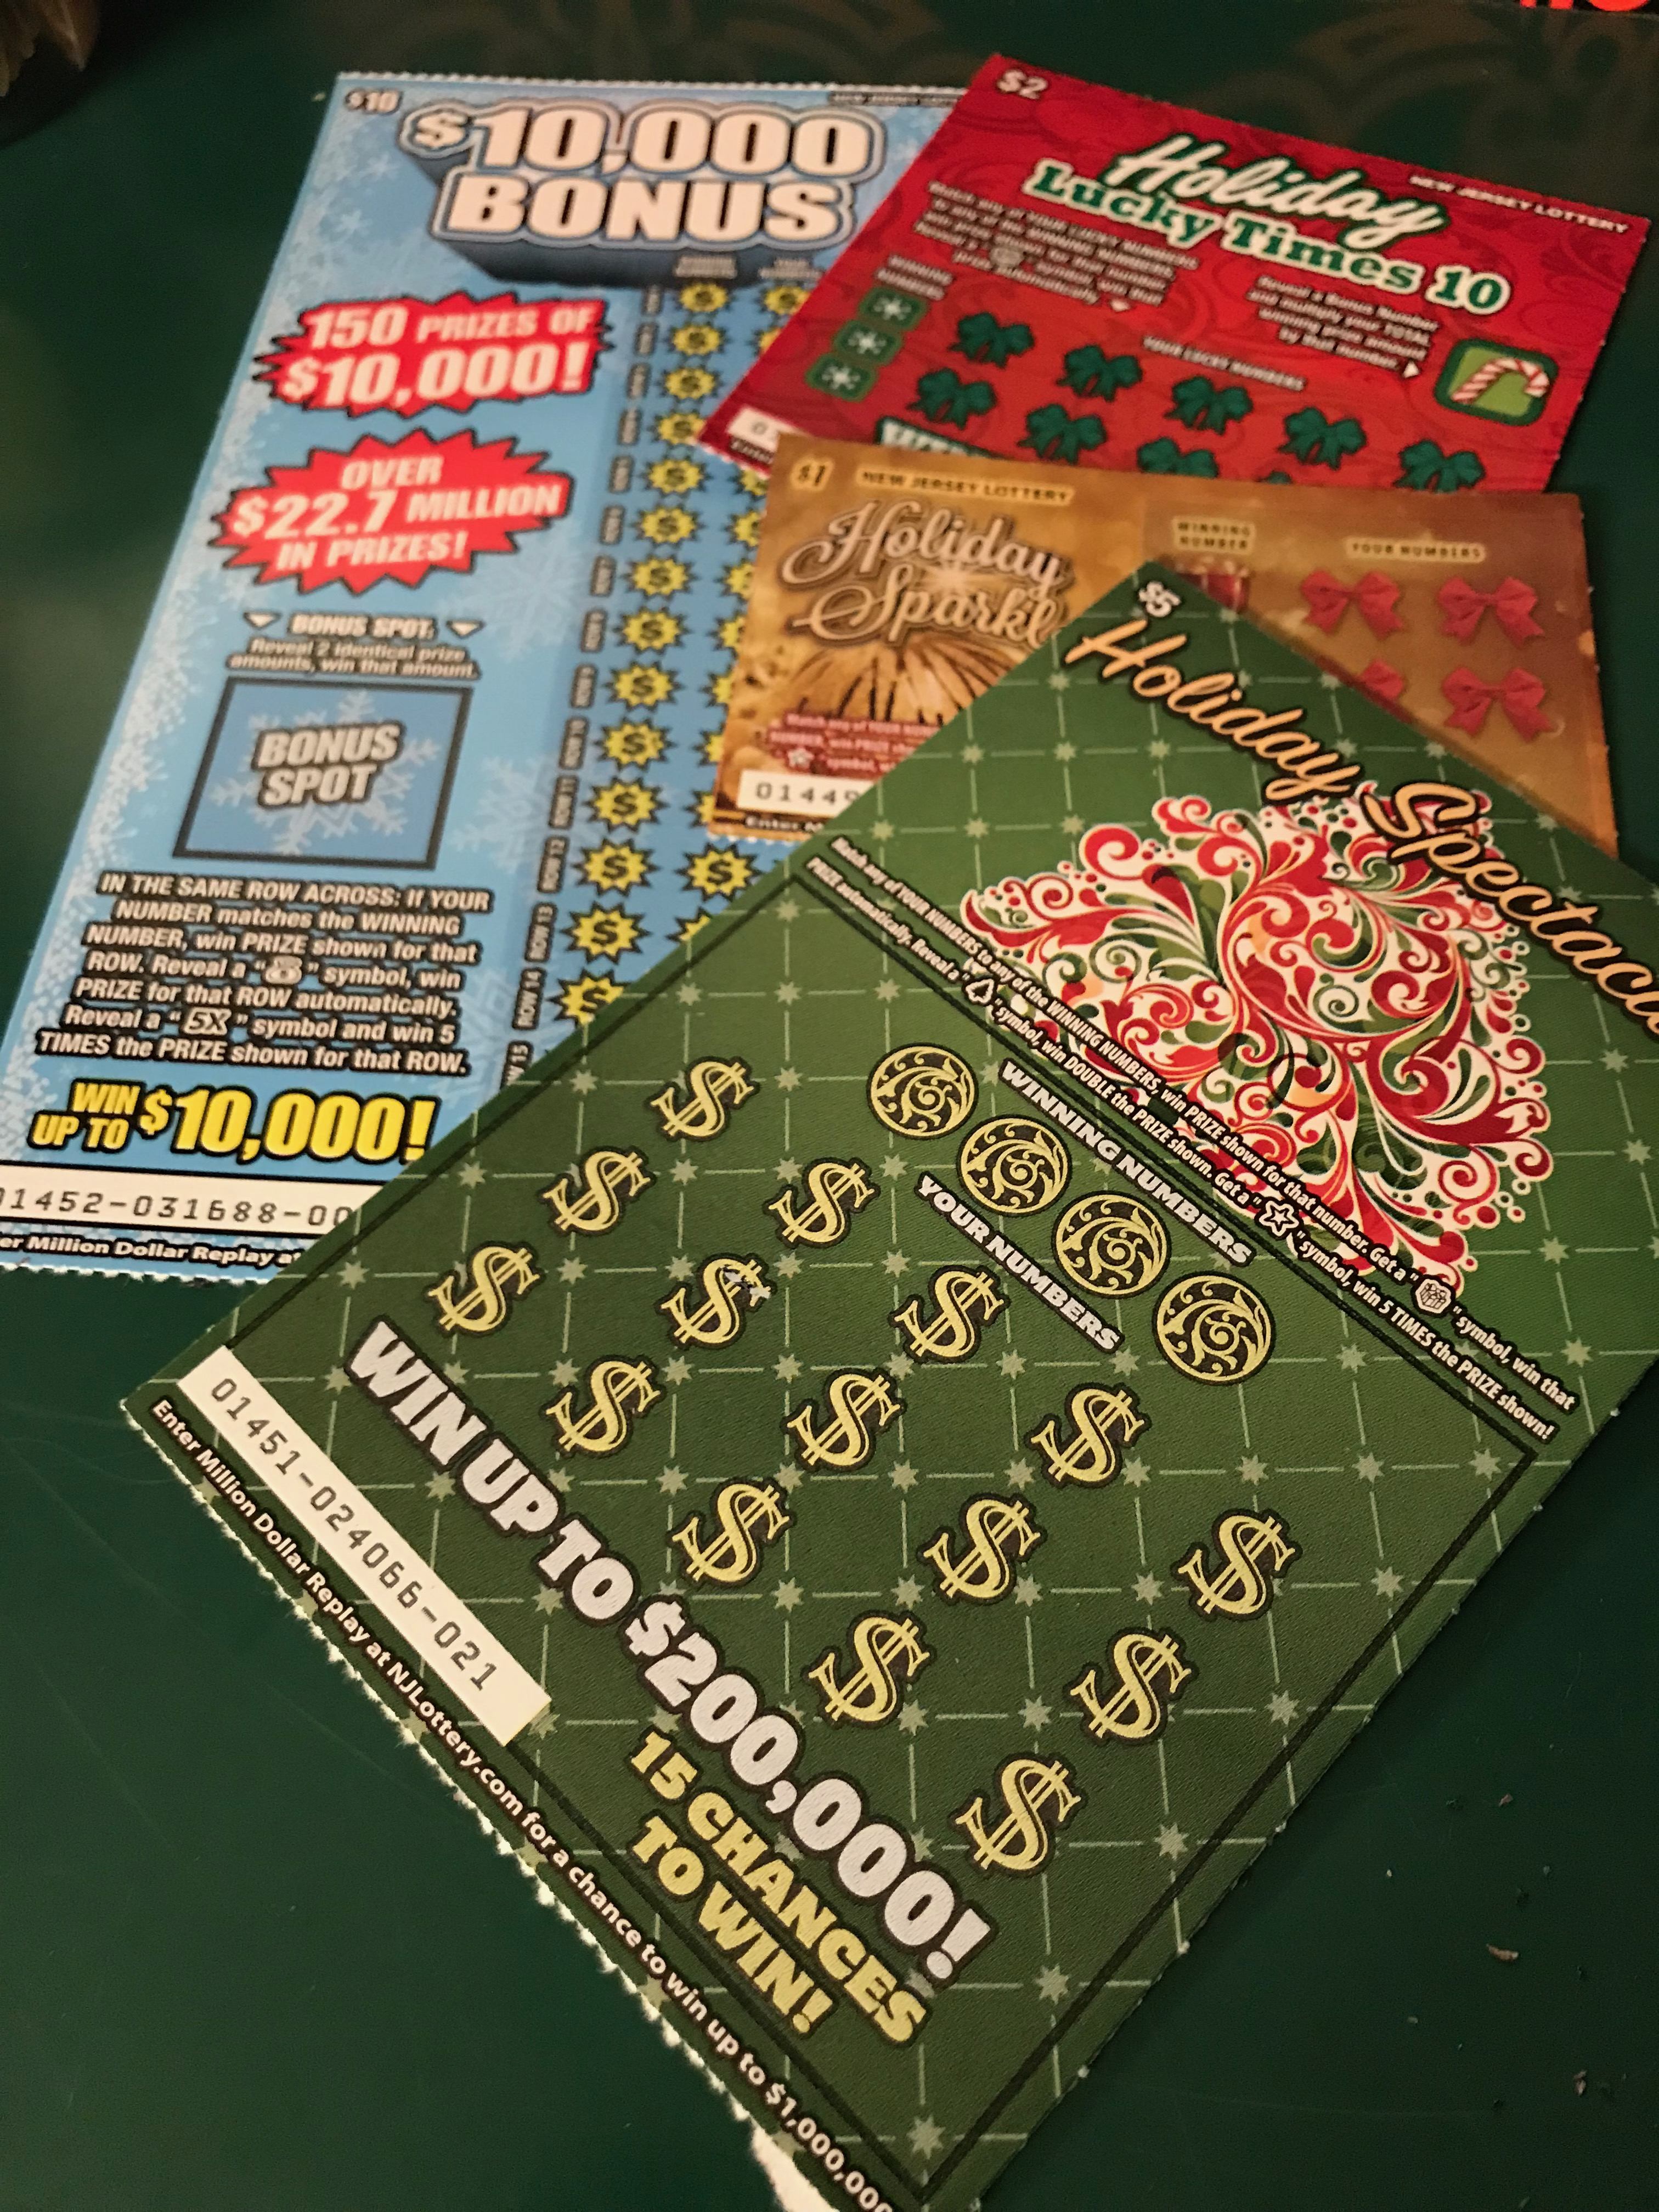 Lotto tickets are the perfect gift!